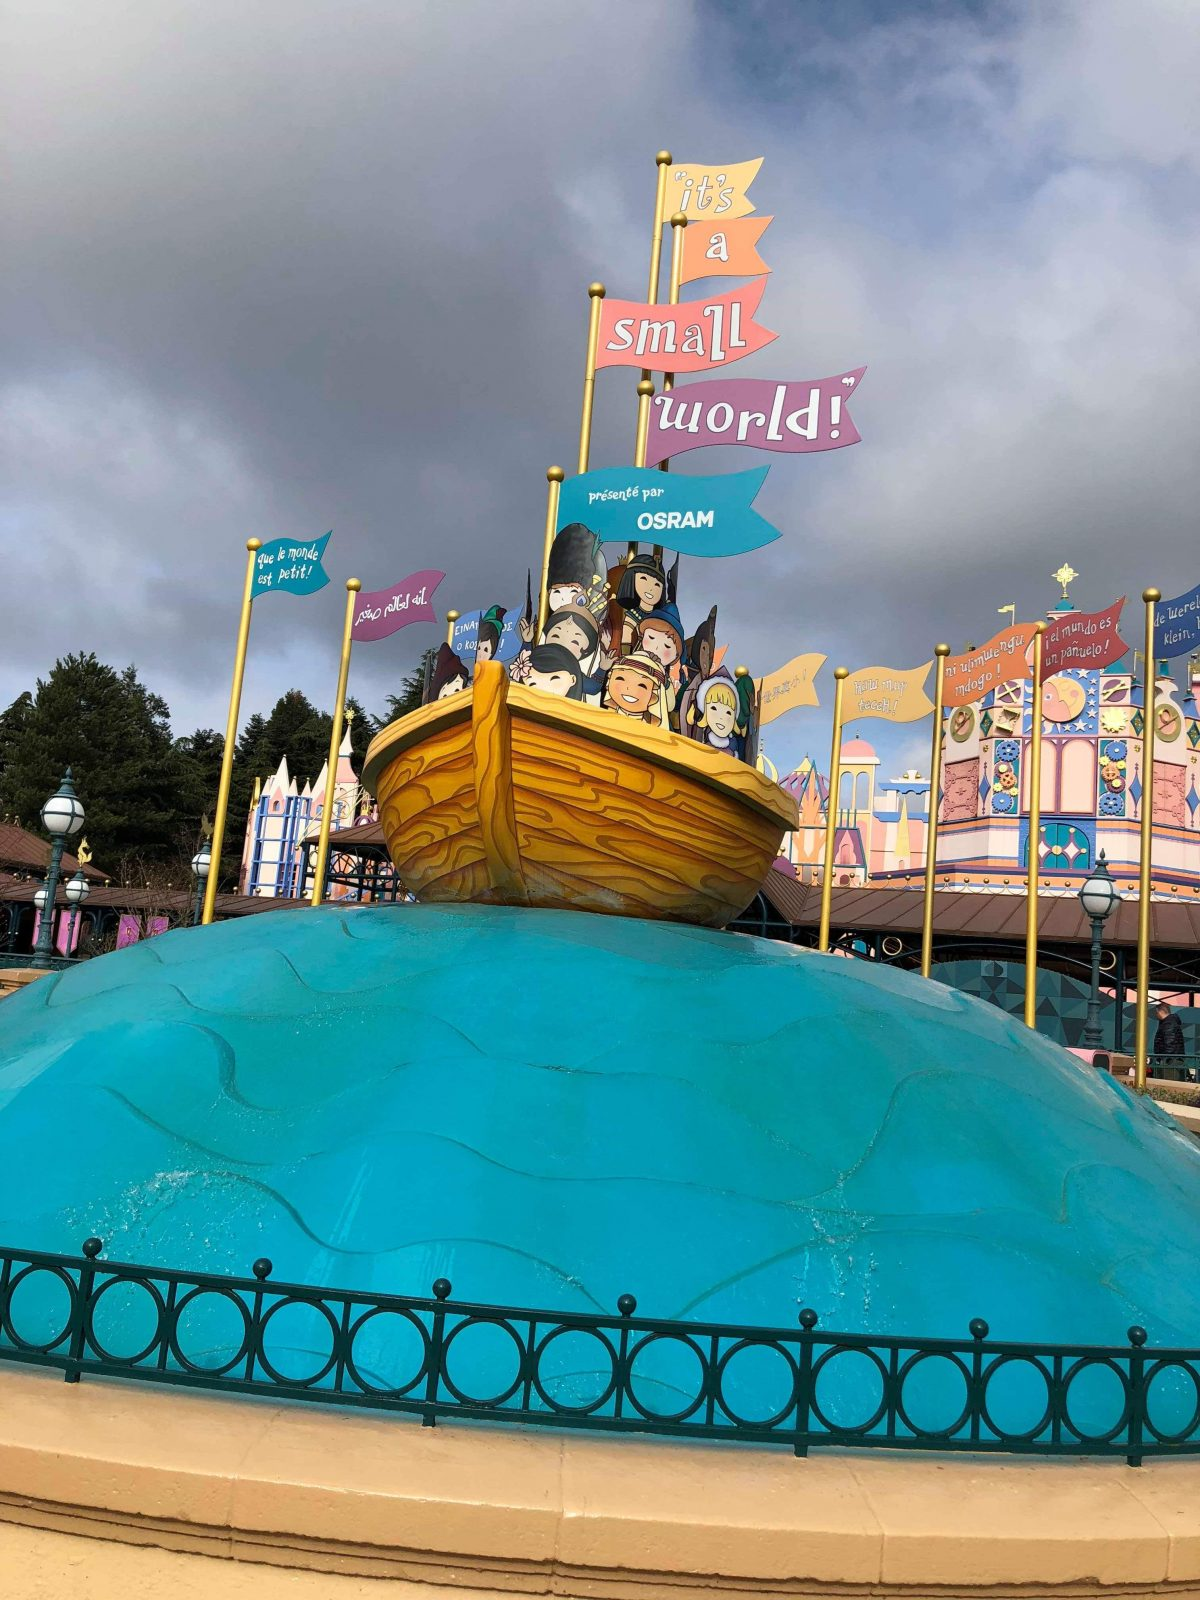 The outside of It's A Small World ride at Disneyland Paris